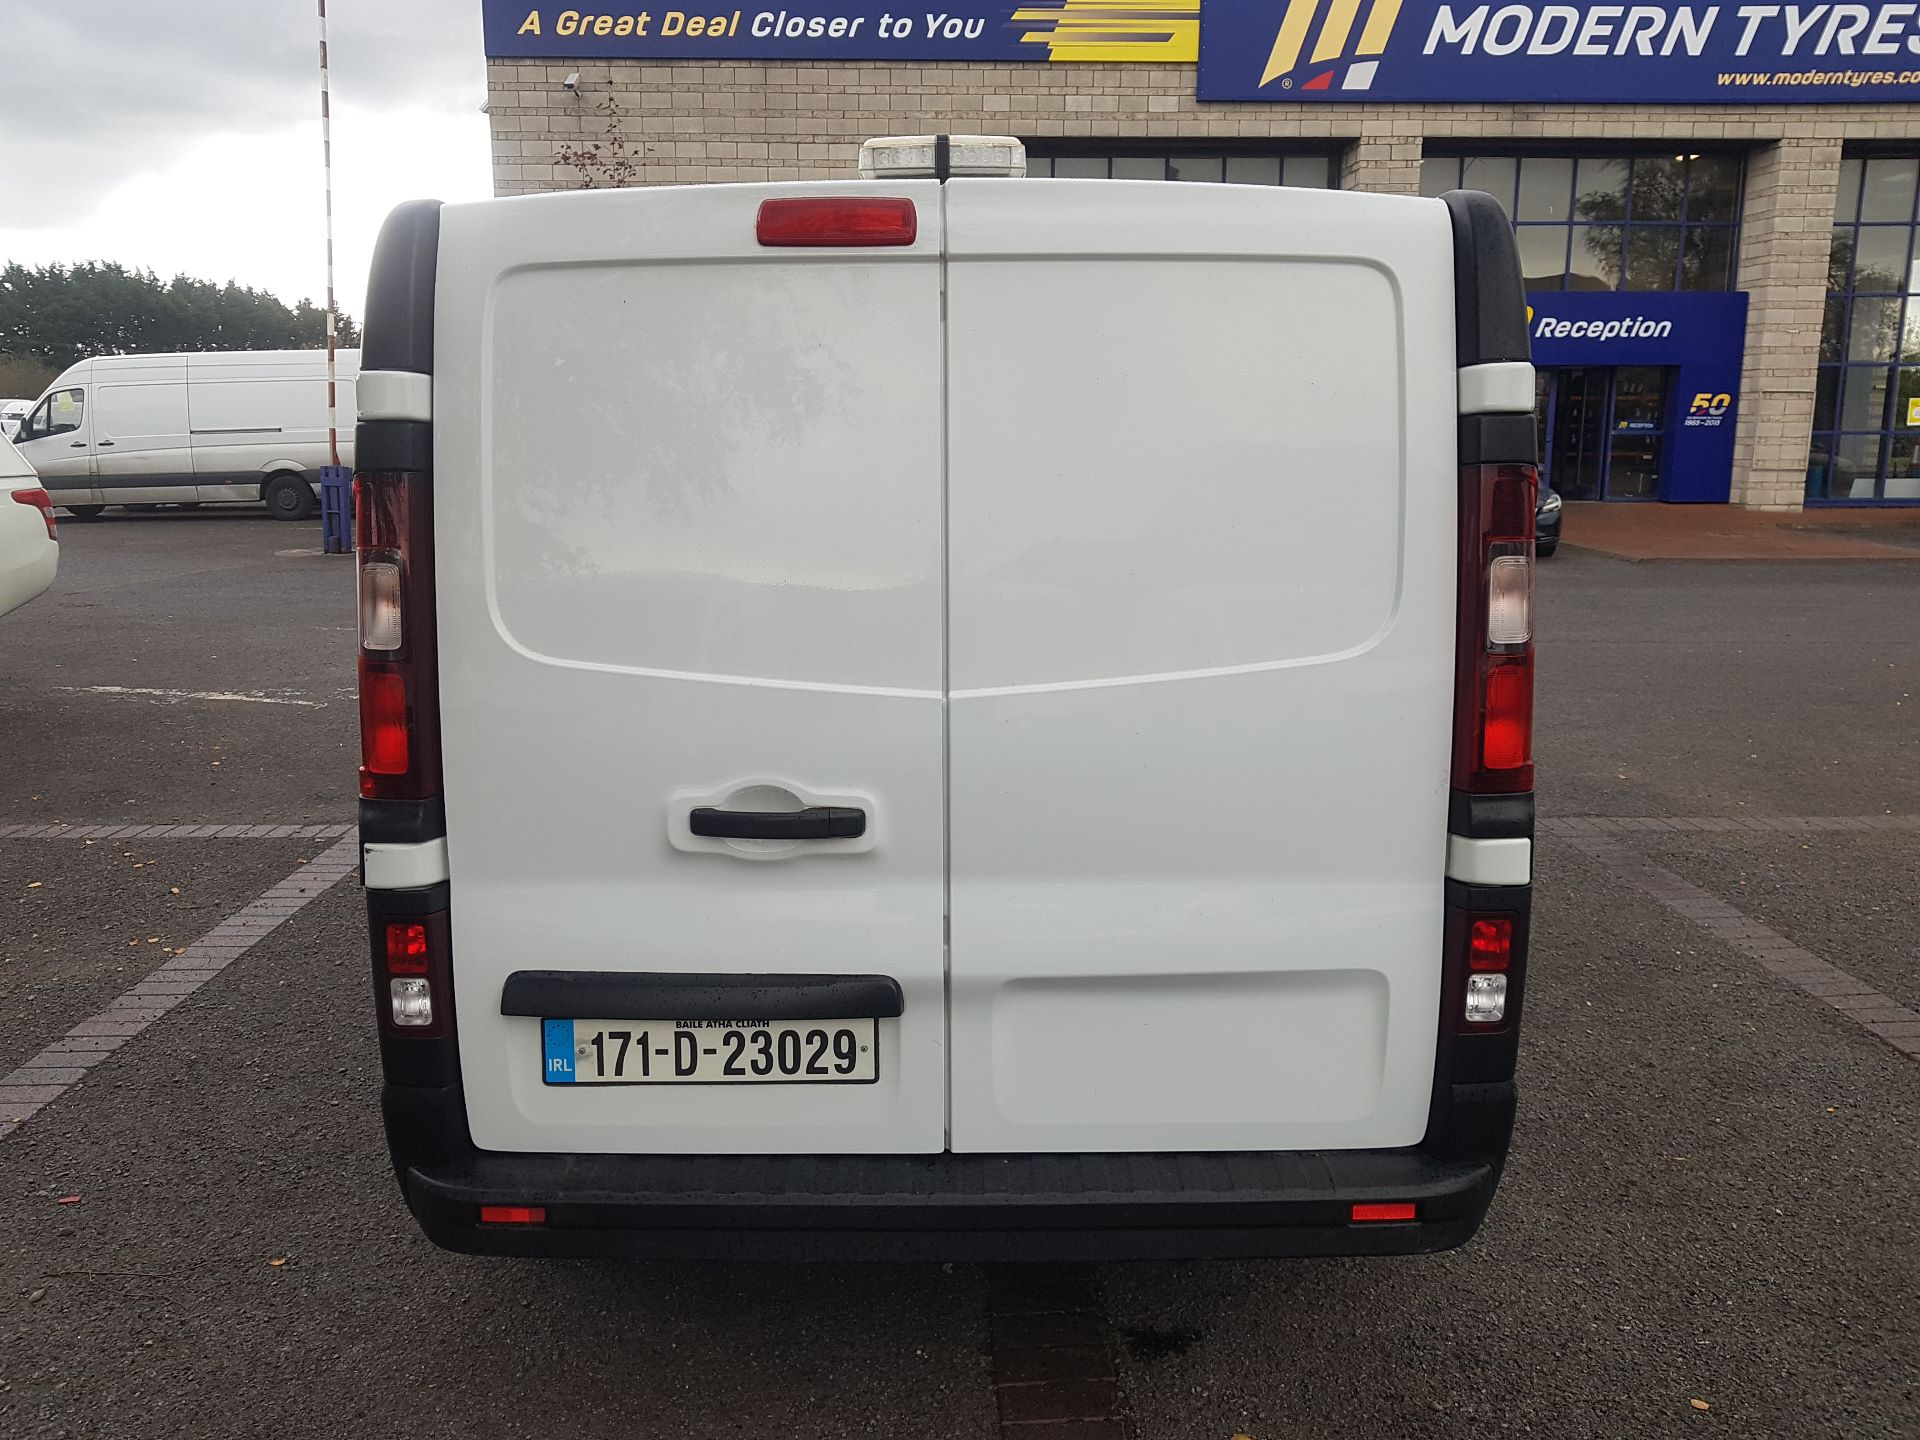 2017 Renault Trafic LL29 DCI 120 Business 3DR (171D23029) Image 4